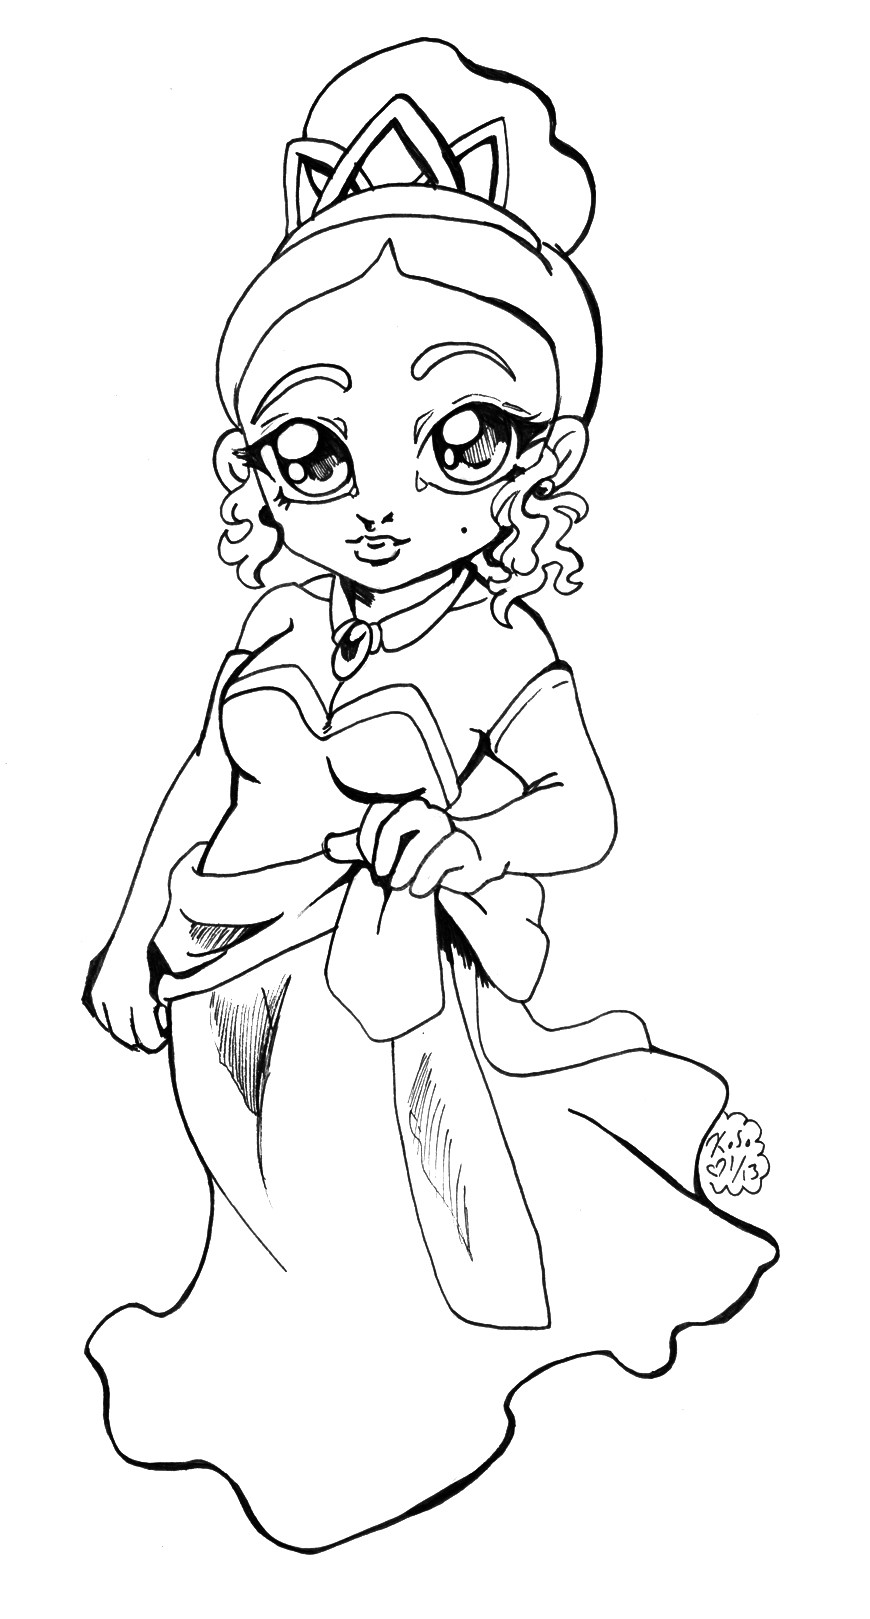 Disney Princess Tiana Chibi BW by bastett on DeviantArt